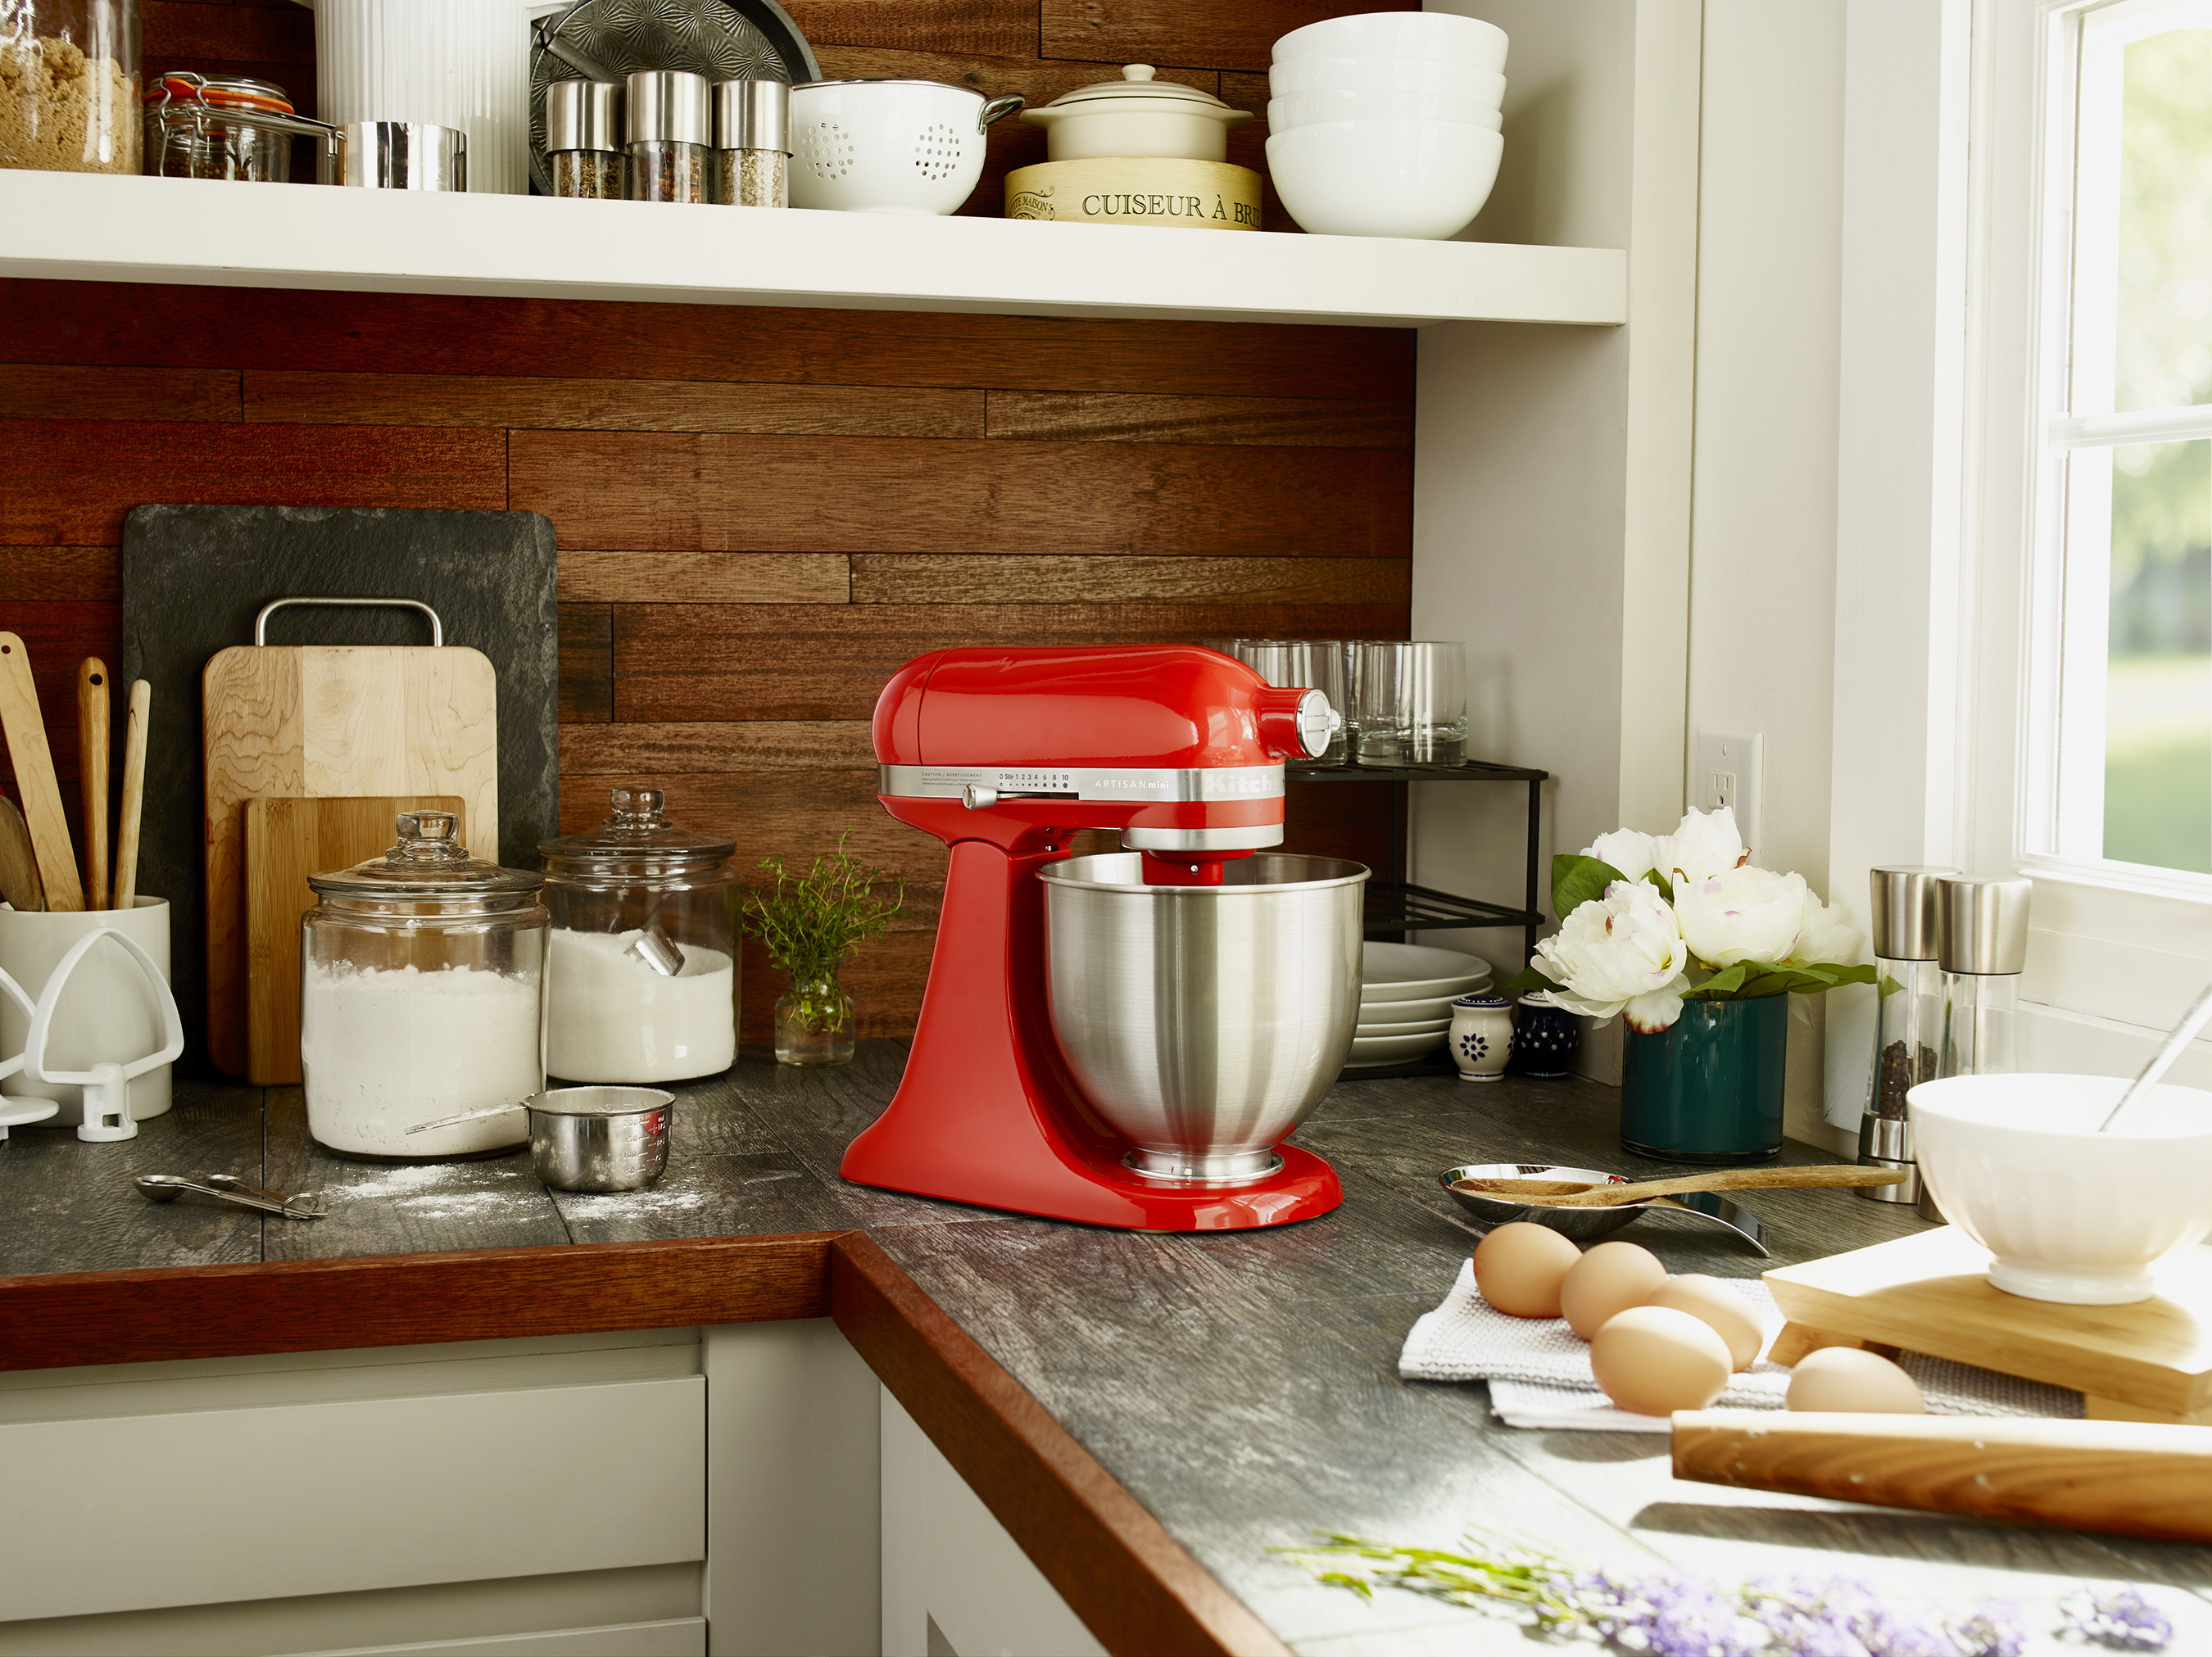 Offering the same power and performance as the brand's Classic™ Stand Mixer, the Artisan® Mini mixer features a 3.5-quart capacity and is 20% smaller and 25% lighter.